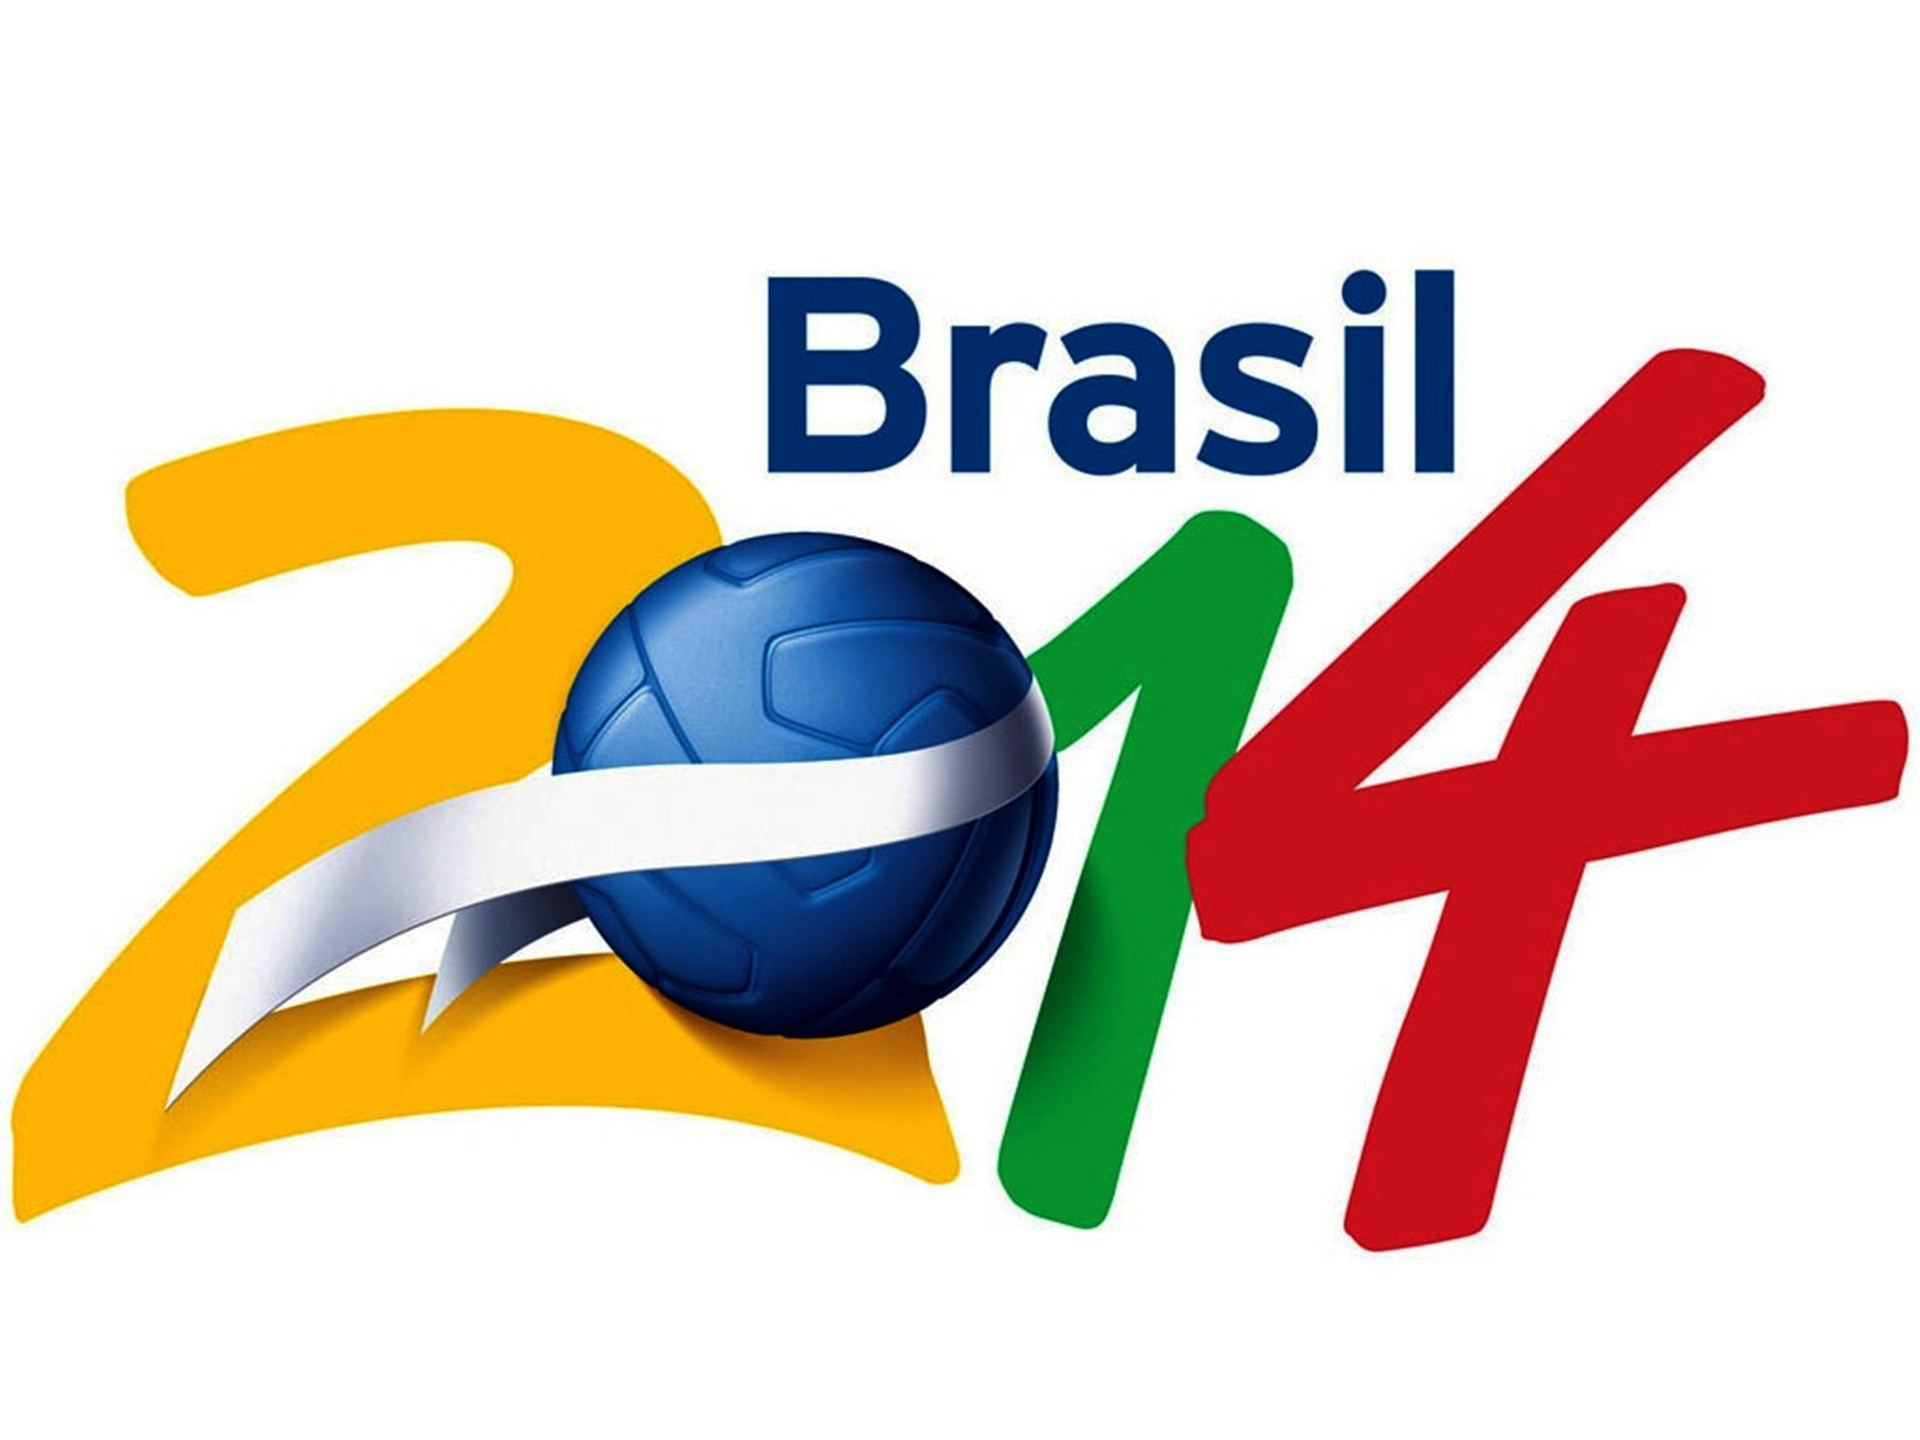 Brazil World Cup 2014 Images